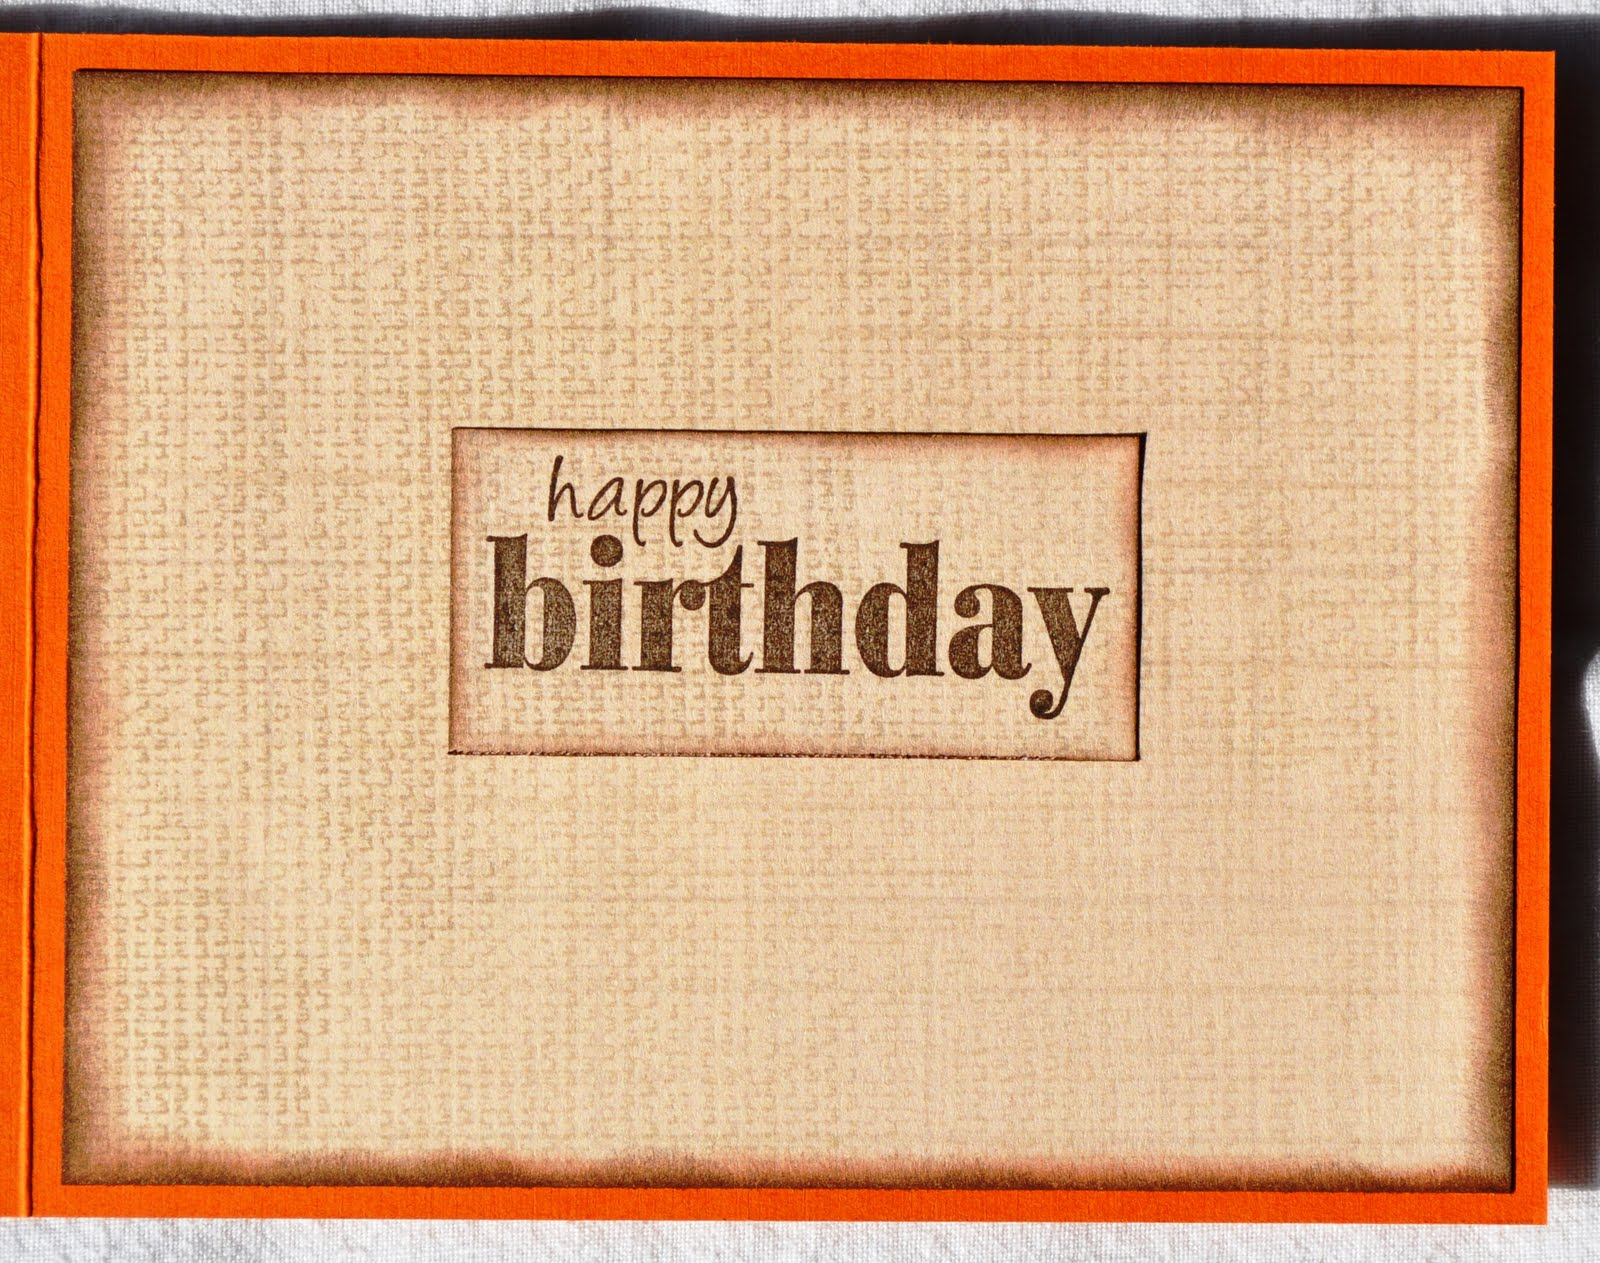 34th birthday card ; Jim%252527s%252B34th%252BBirthday%252BCard%252BInside